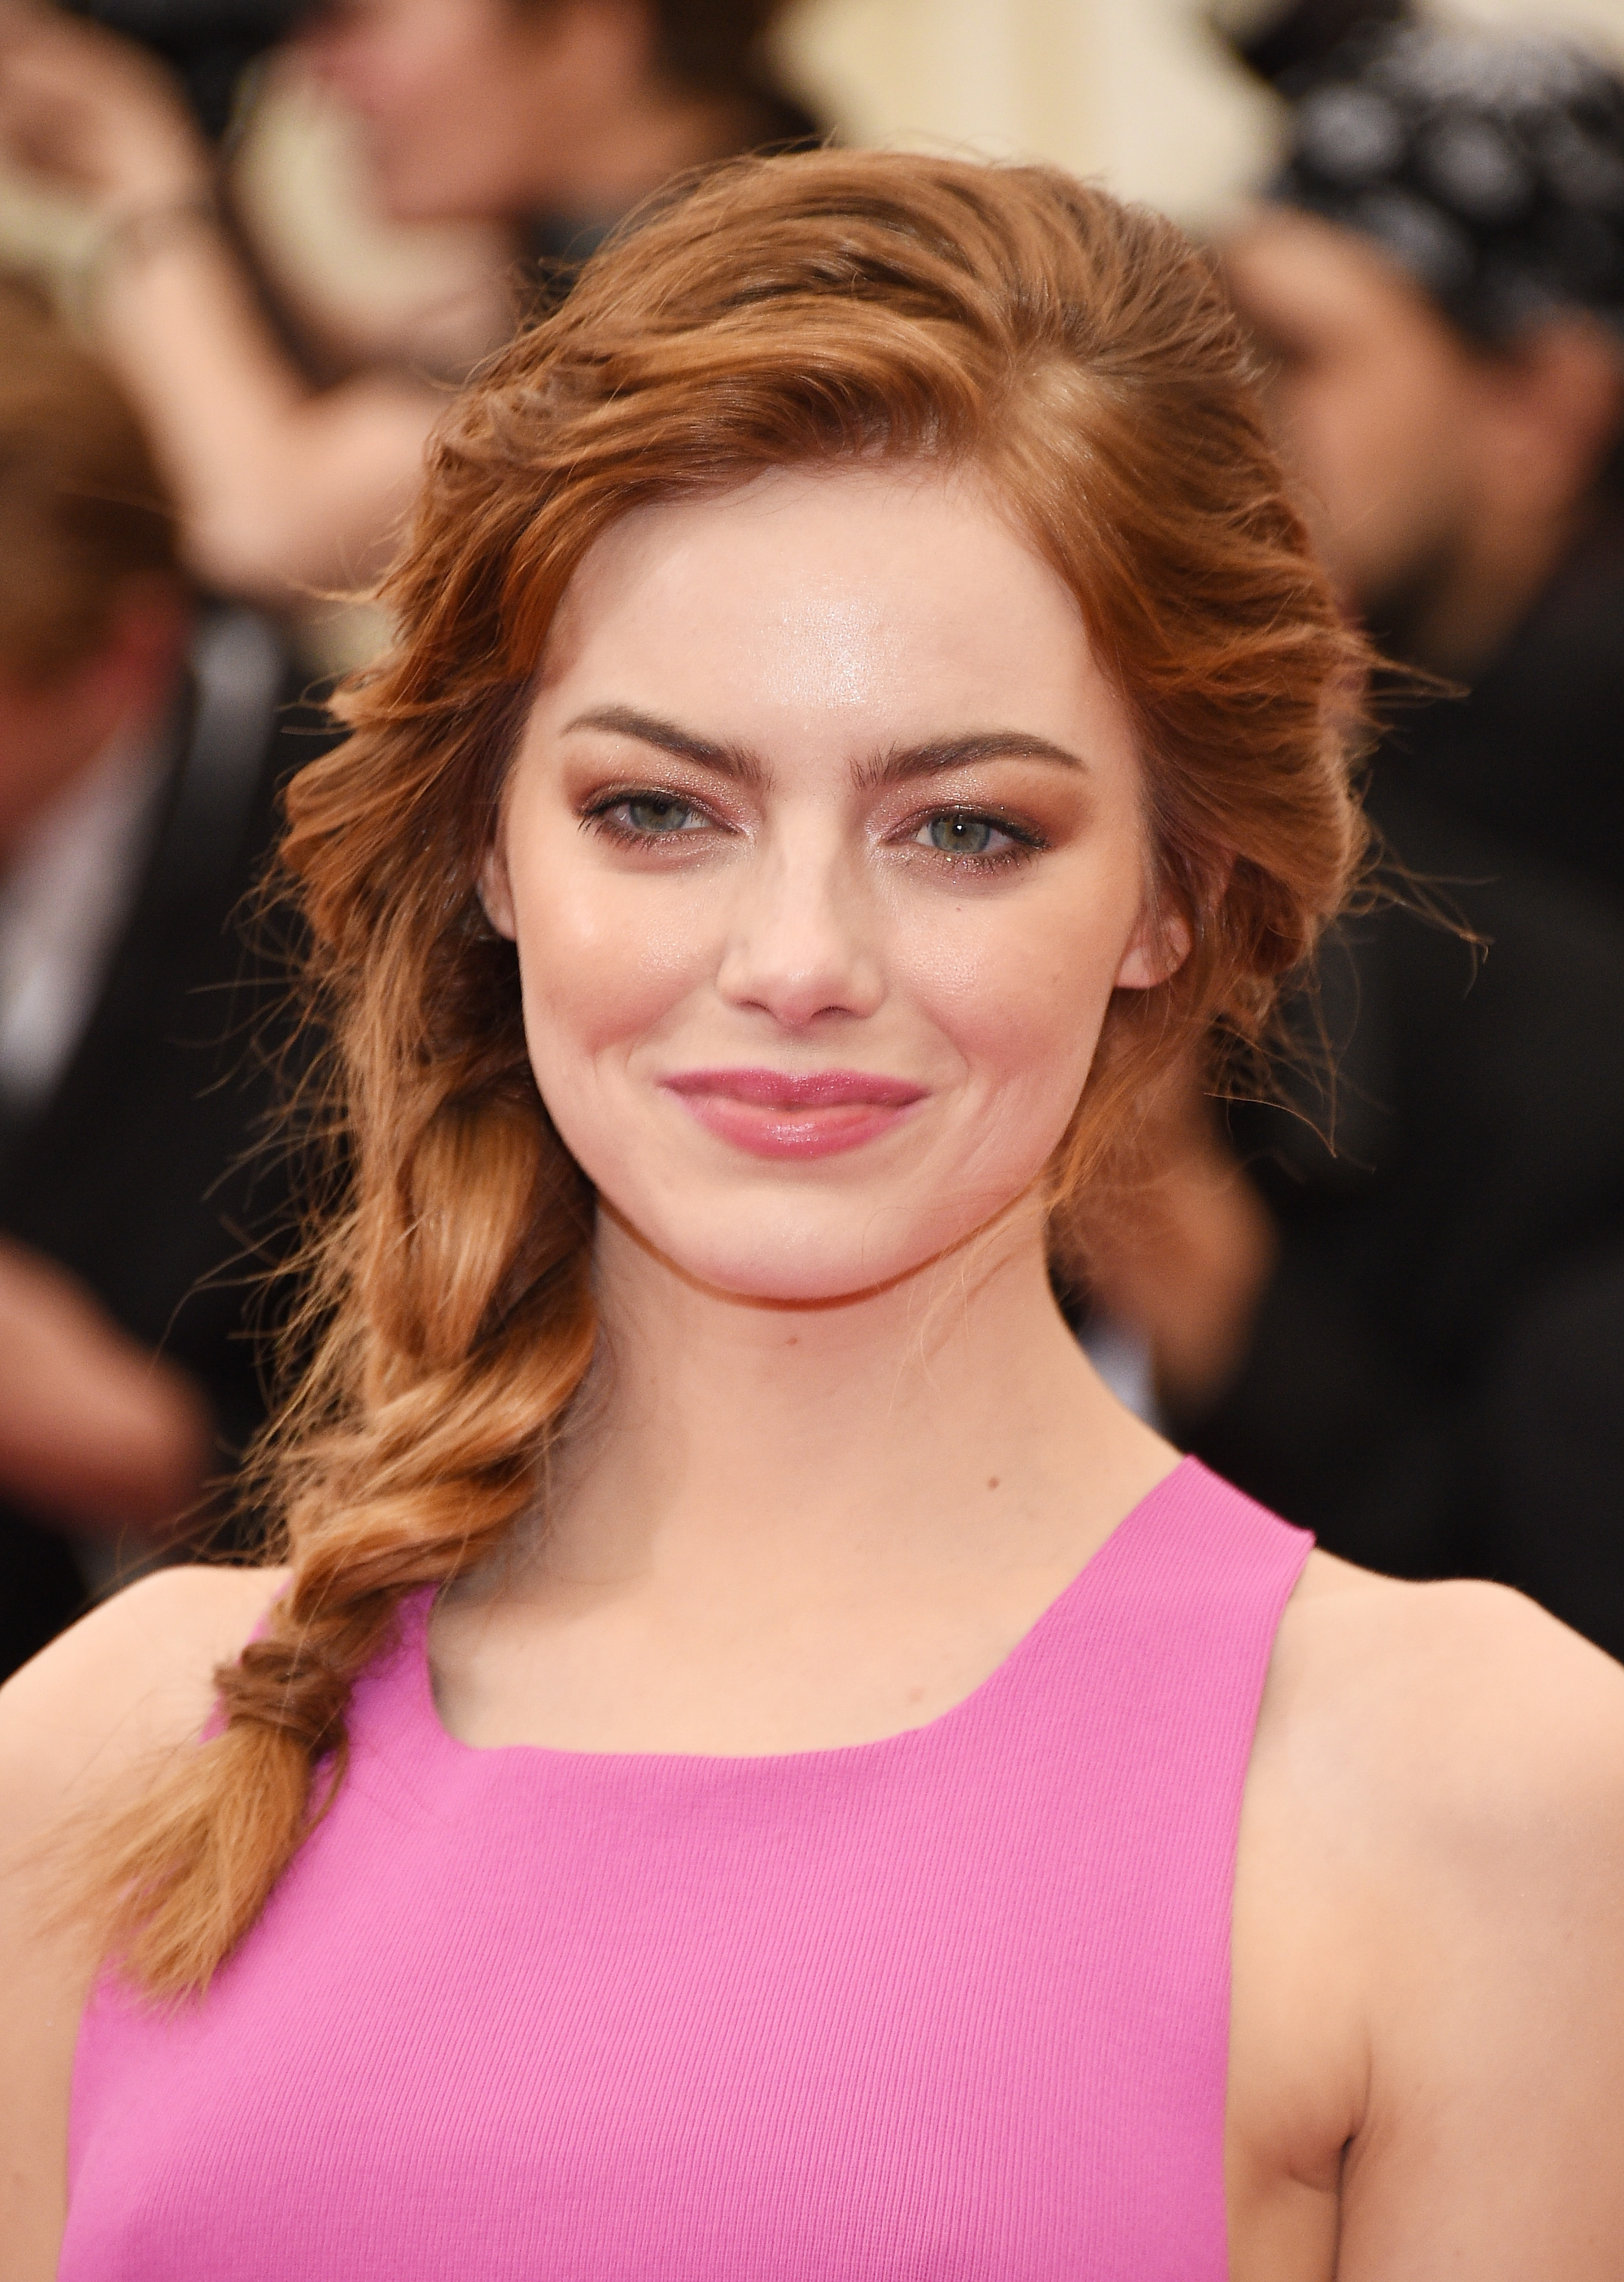 Emma Stone attends the  Charles James: Beyond Fashion  Costume Institute Gala at the Metropolitan Museum of Art on May 5, 2014 in New York City.